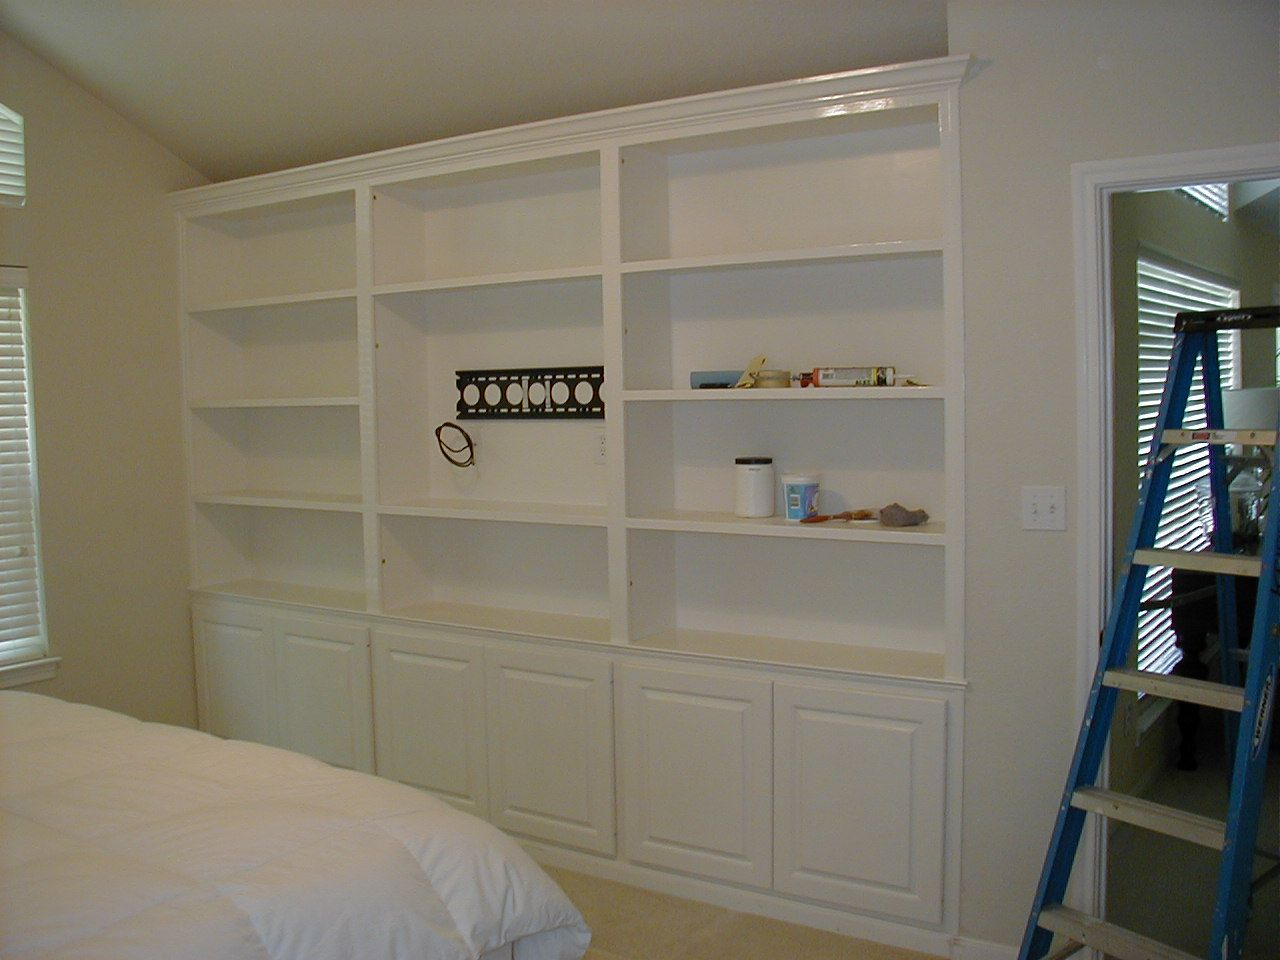 Images of wall mounted tv with built in cabinets wall with cabinets shelves and a place Small wall cabinets for bedroom